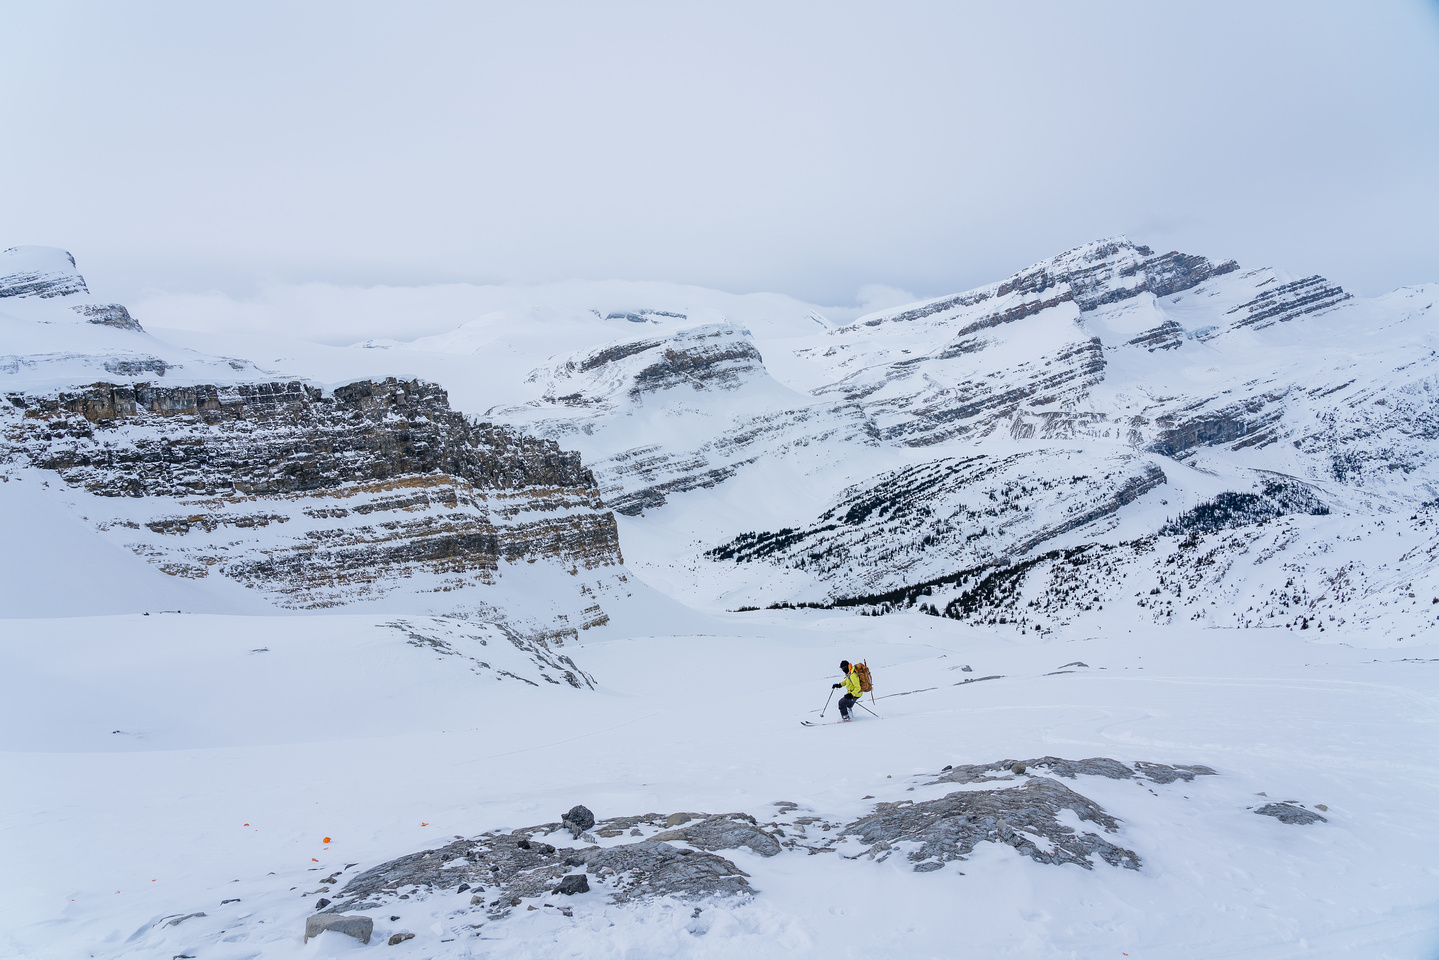 Skiing down to the Bow Canyon.